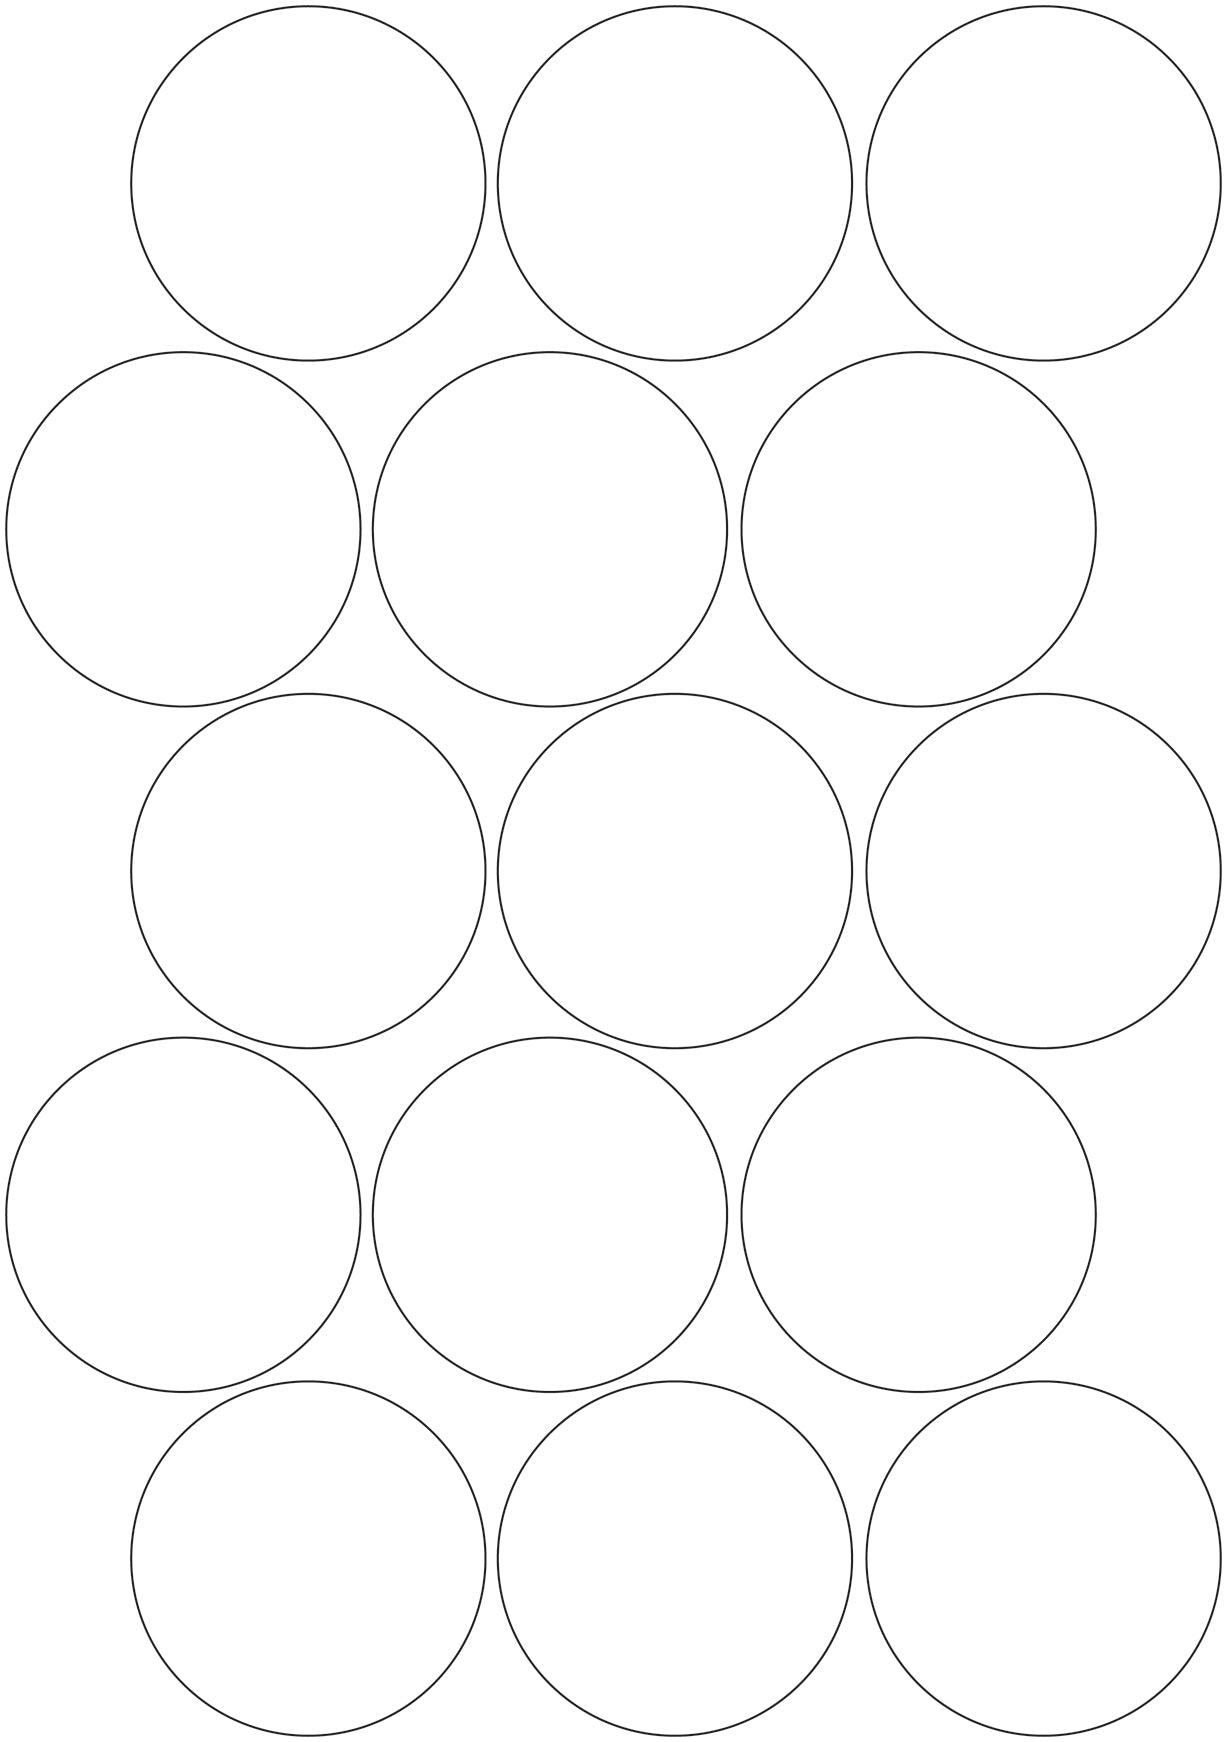 3M White/Silver Reflective Circles - A4 Sheet 60mm Circles